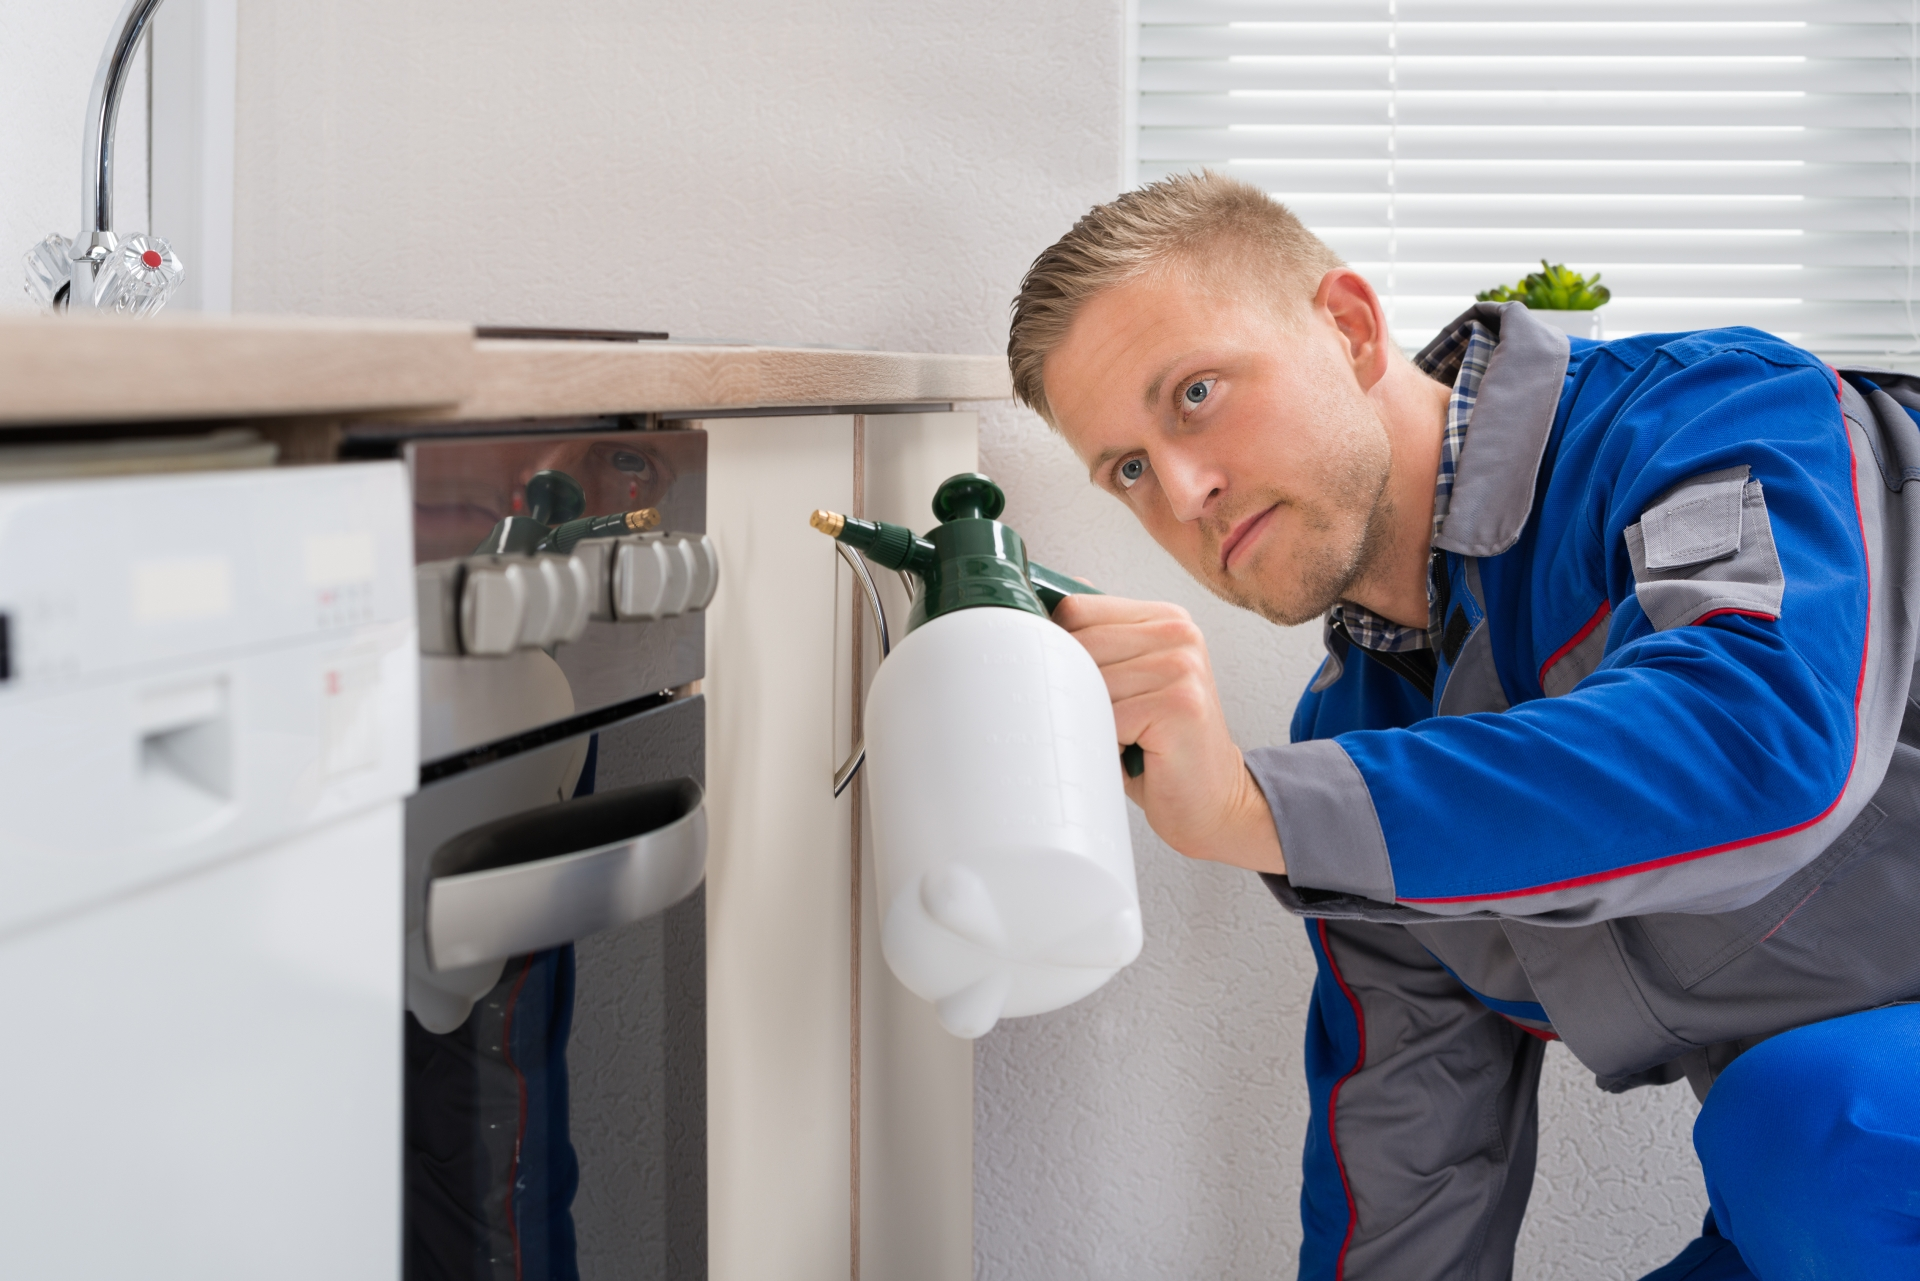 Pest Inspection, Pest Control in Havering-atte-Bower, Abridge, RM4. Call Now 020 8166 9746